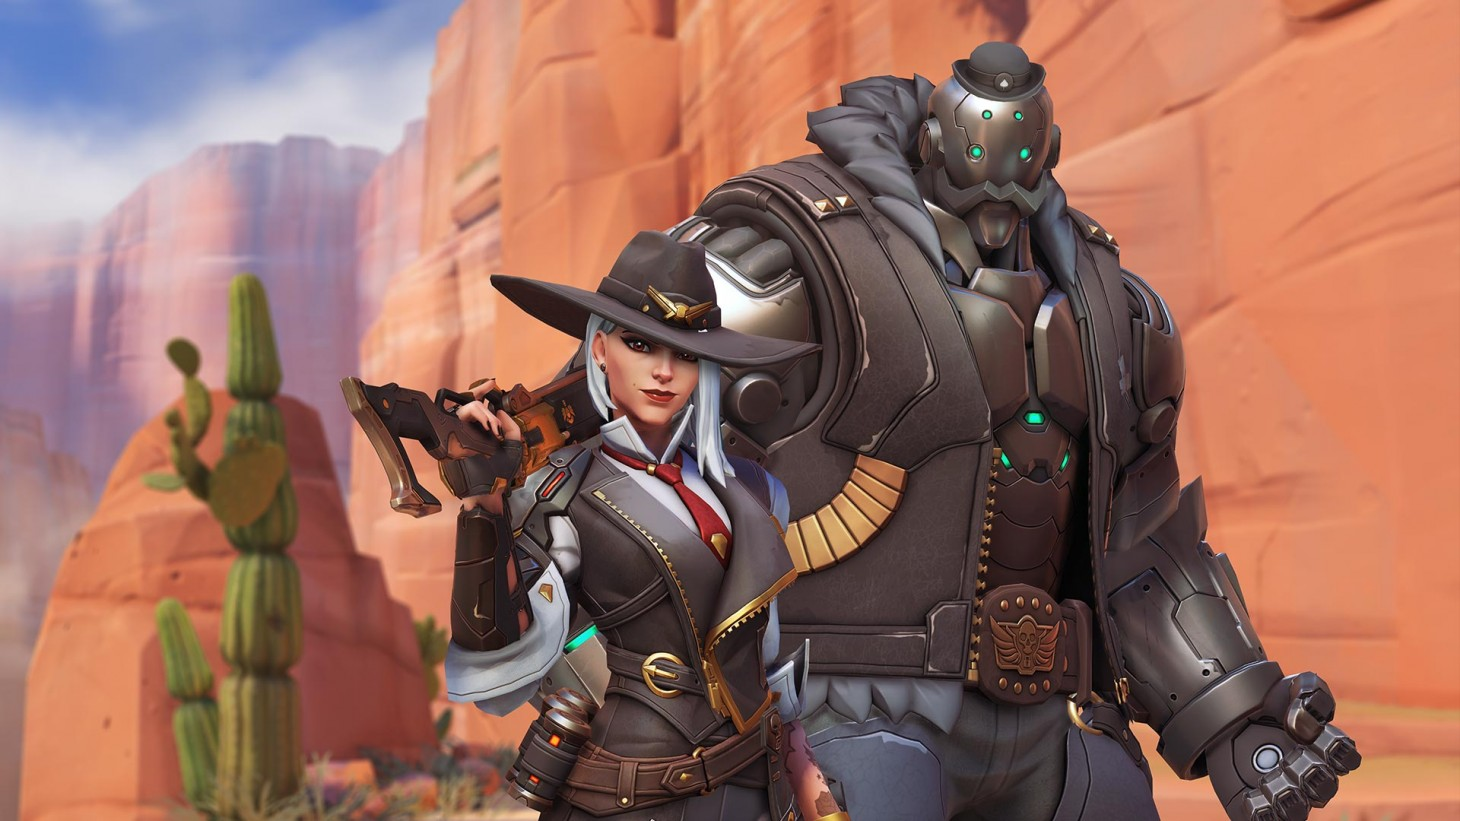 crossplay-is-now-live-in-overwatch-ashe-event-also-launching-today